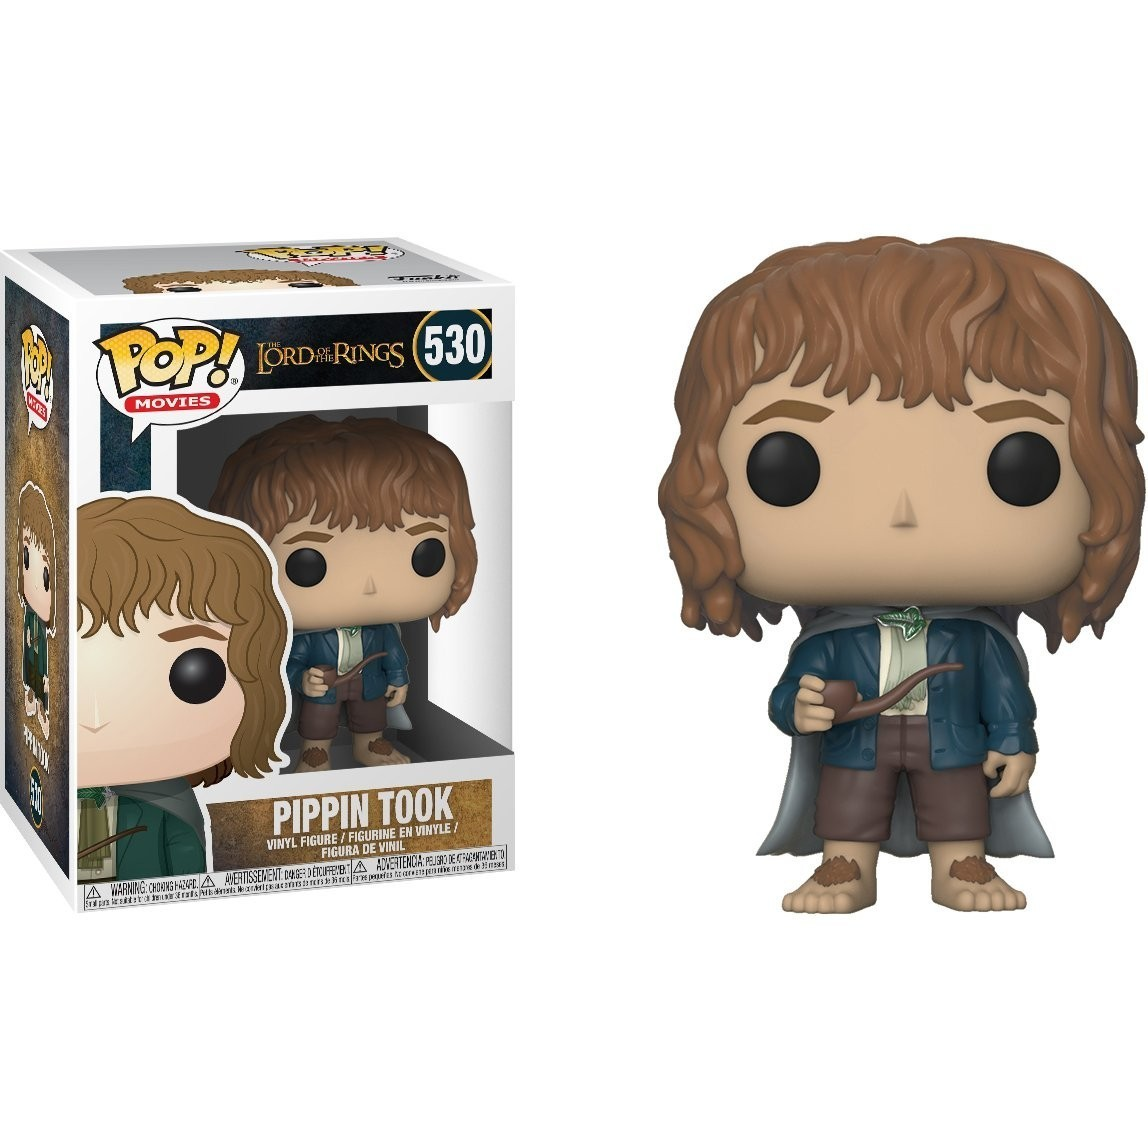 POP! The Lord of the Rings - Pippin Took (530)